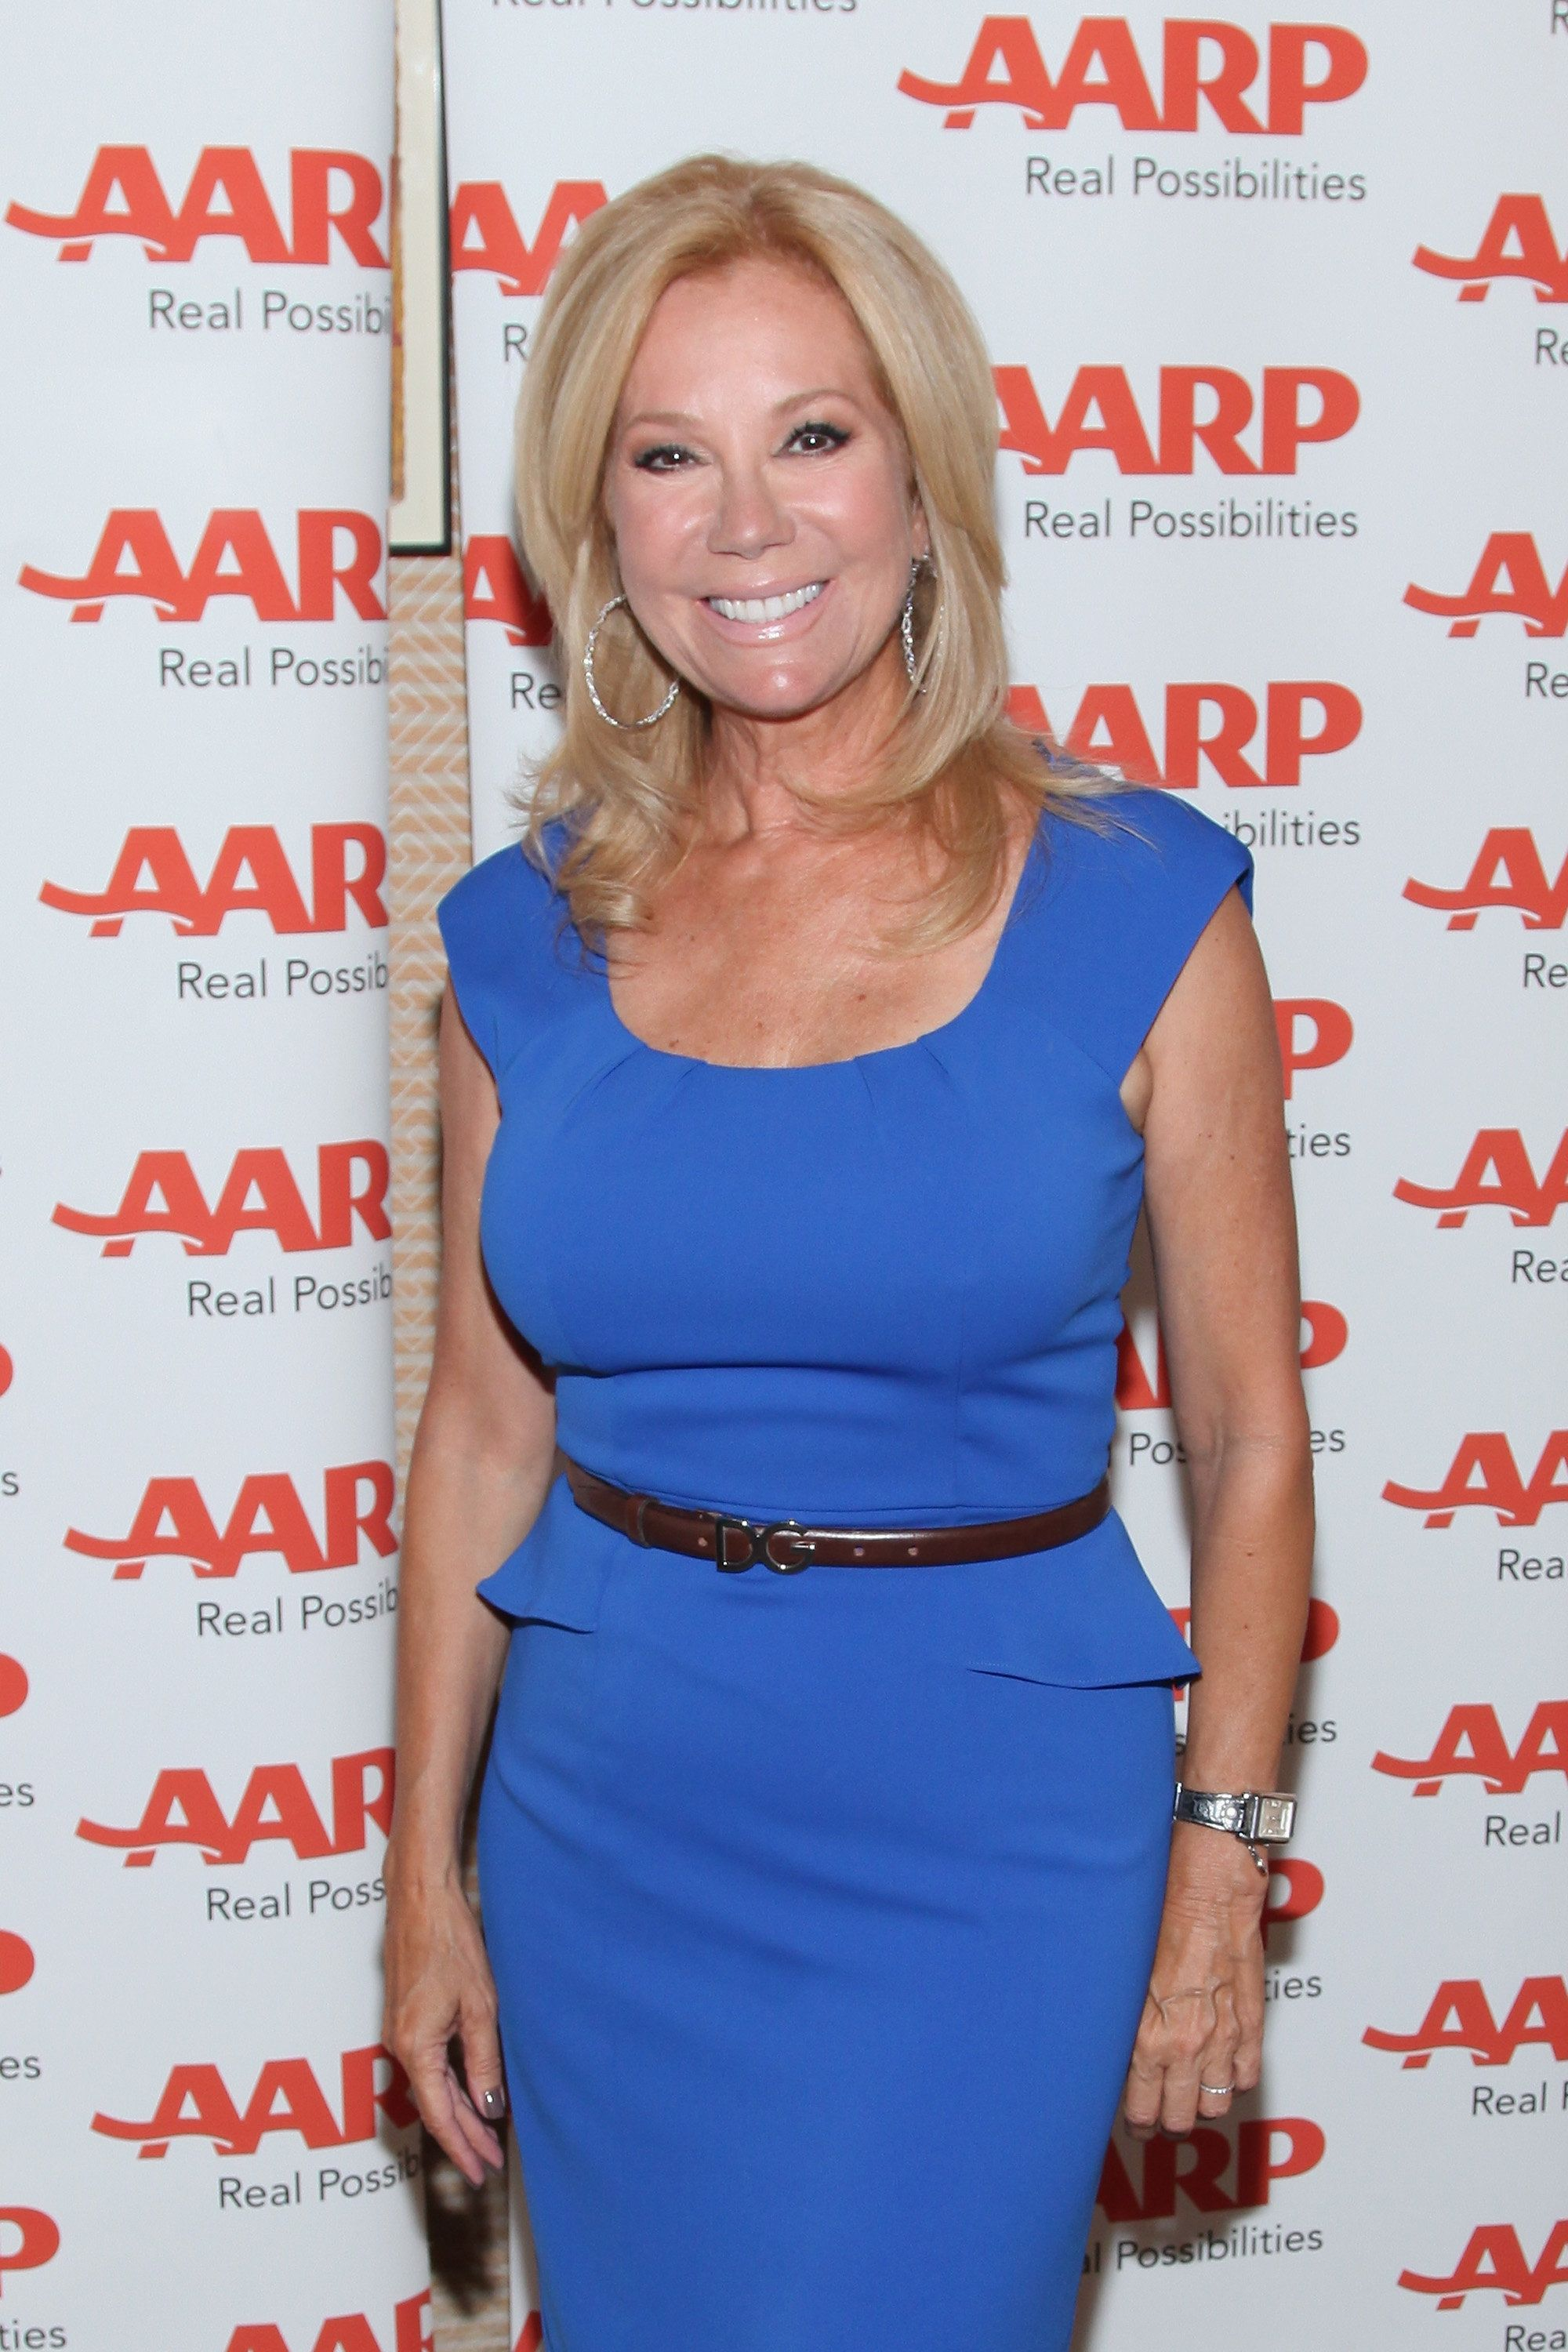 NEW YORK, NY - JUNE 03:  Kathie Lee Gifford attends the Hoda Kotb And Kathie Lee Gifford AARP Magazine Cover Celebration at Le Bernardin on June 3, 2013 in New York City.  (Photo by Taylor Hill/Getty Images)